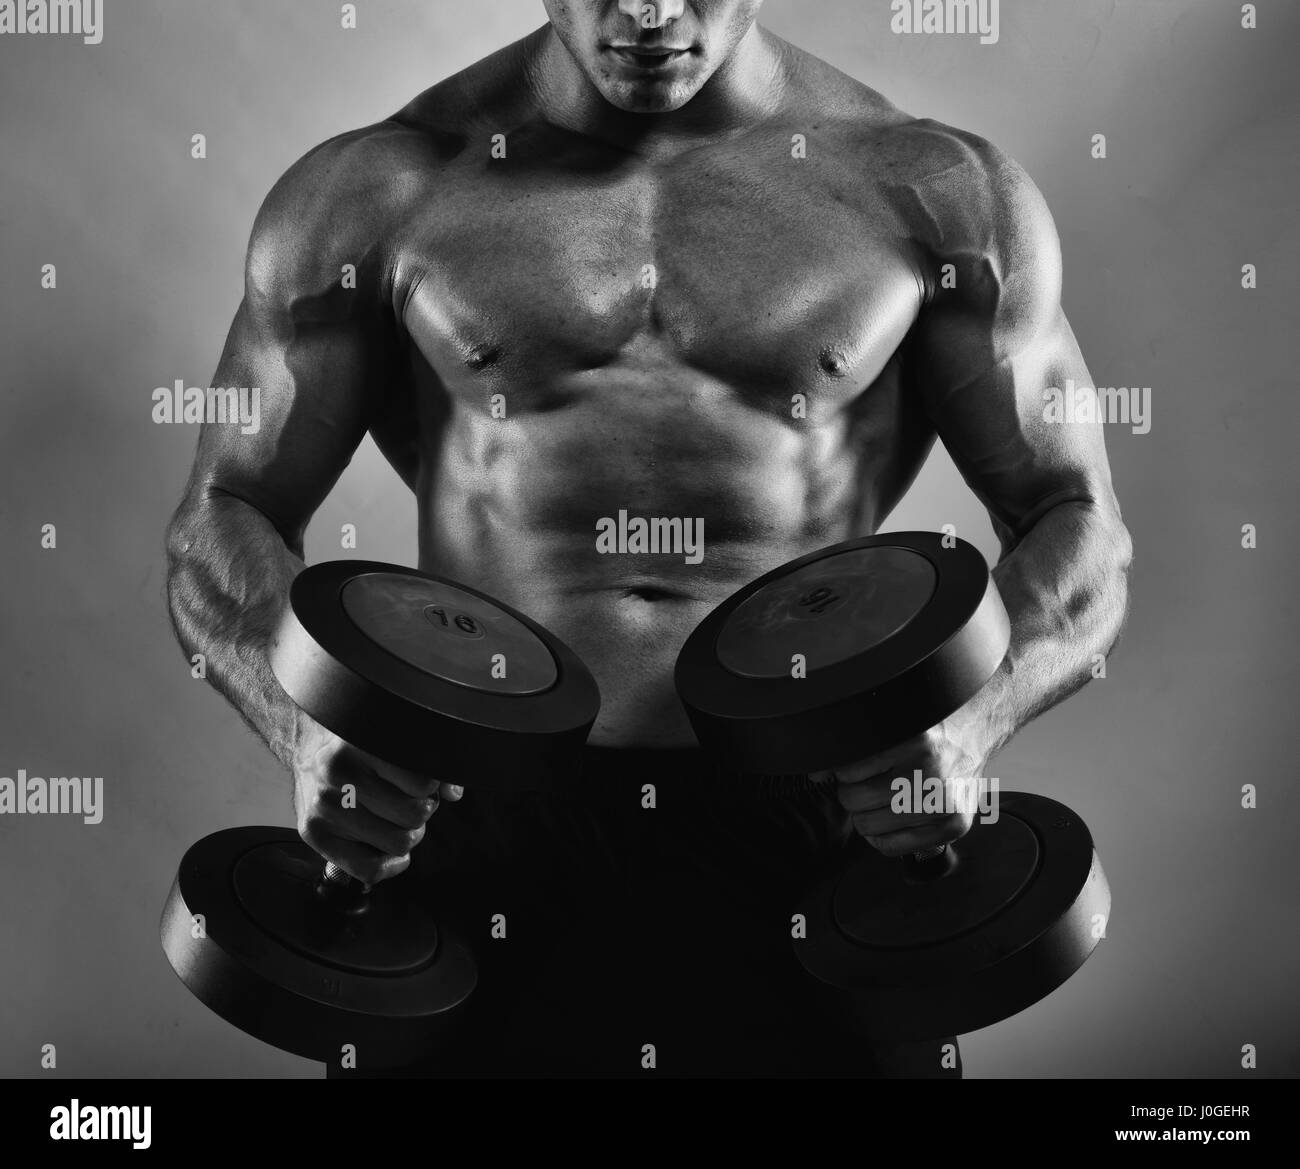 Athletic man training biceps - Stock Image